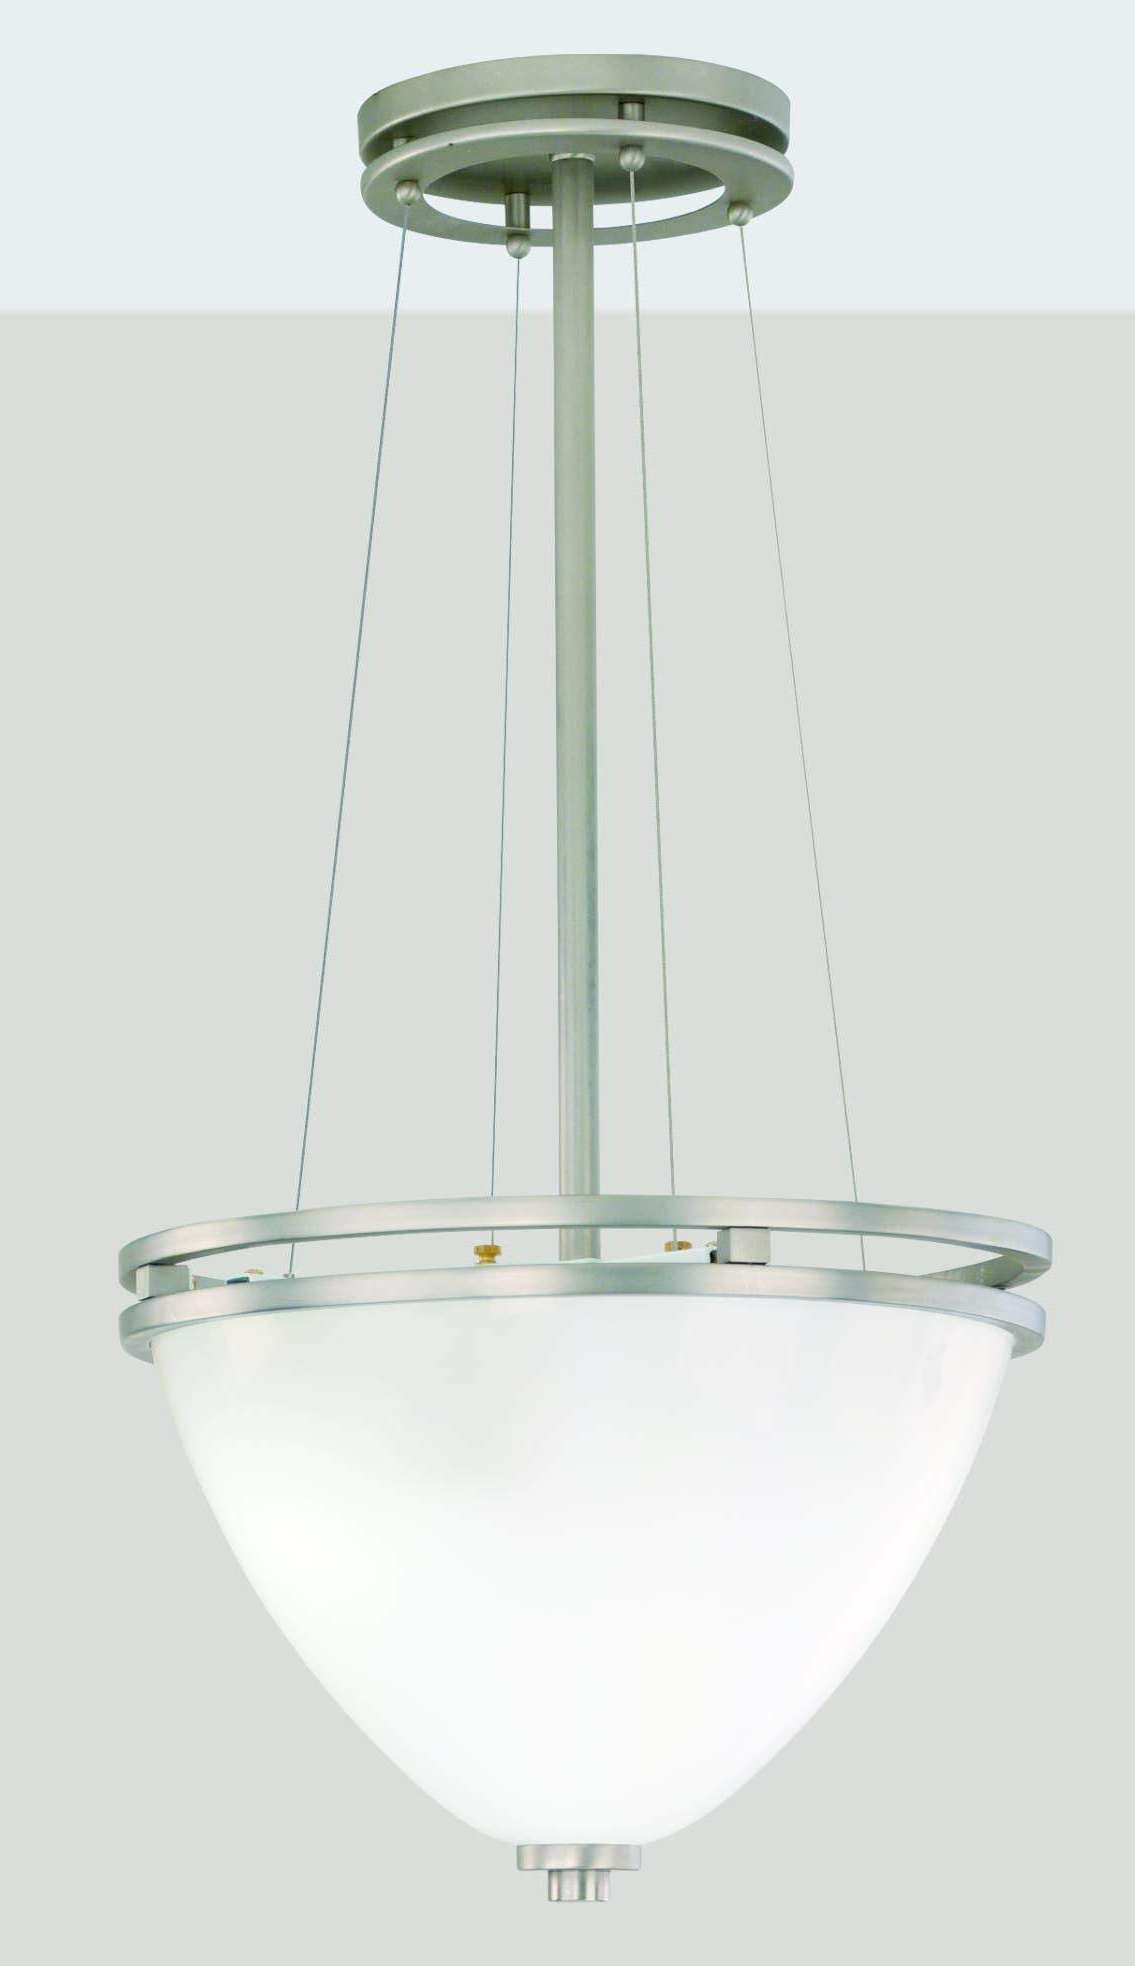 W a c lighting introduces 39 norfolk series 39 of - Commercial lighting fixtures interior ...